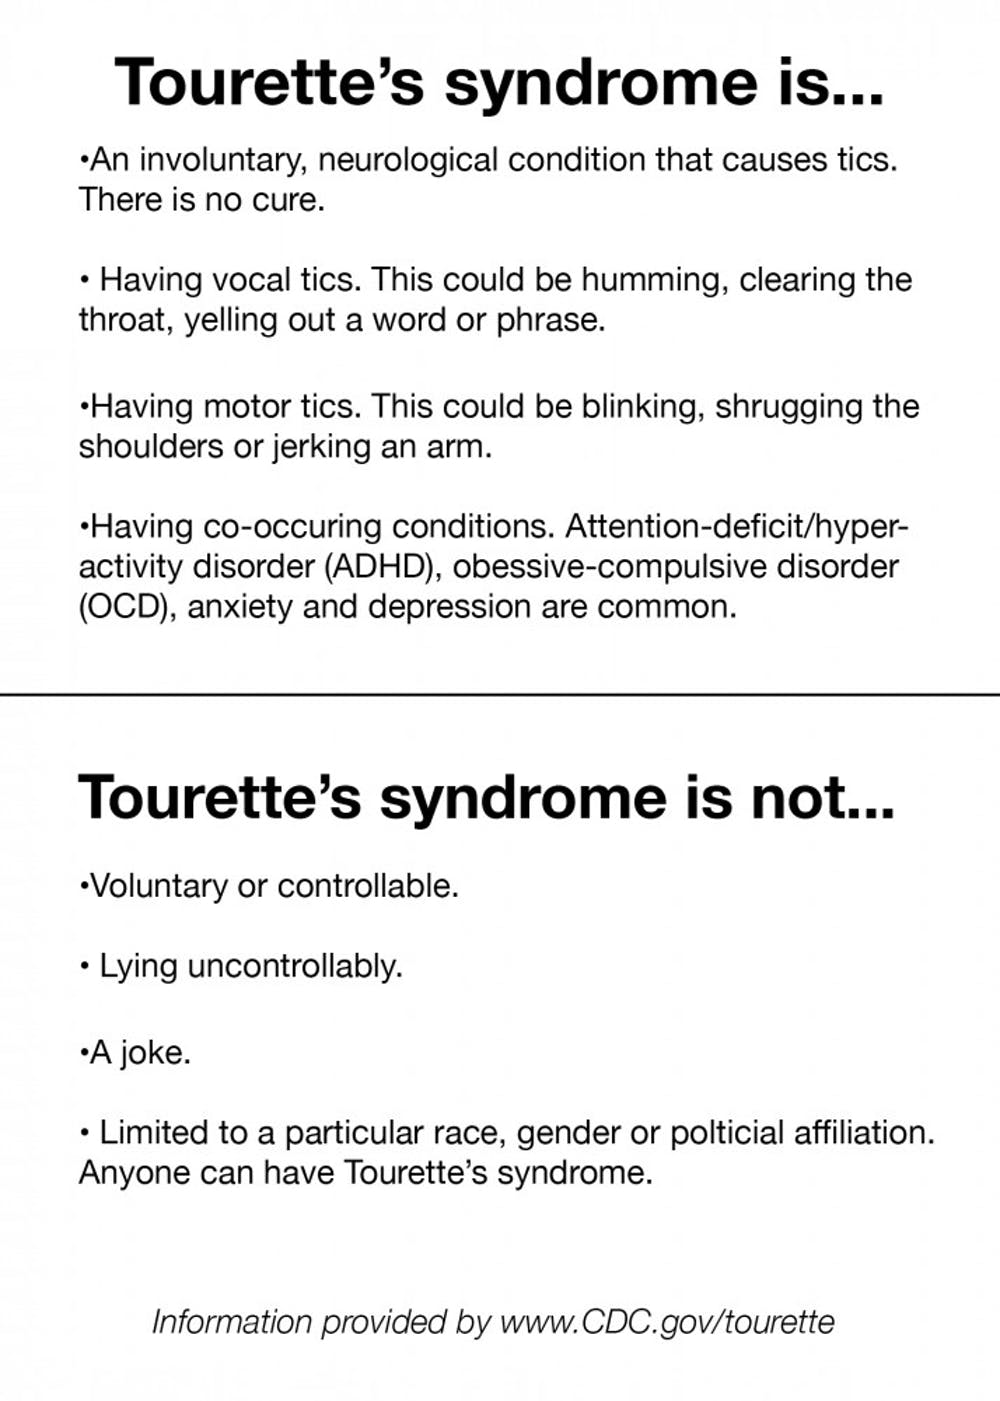 Tourette's is a disorder, not politics